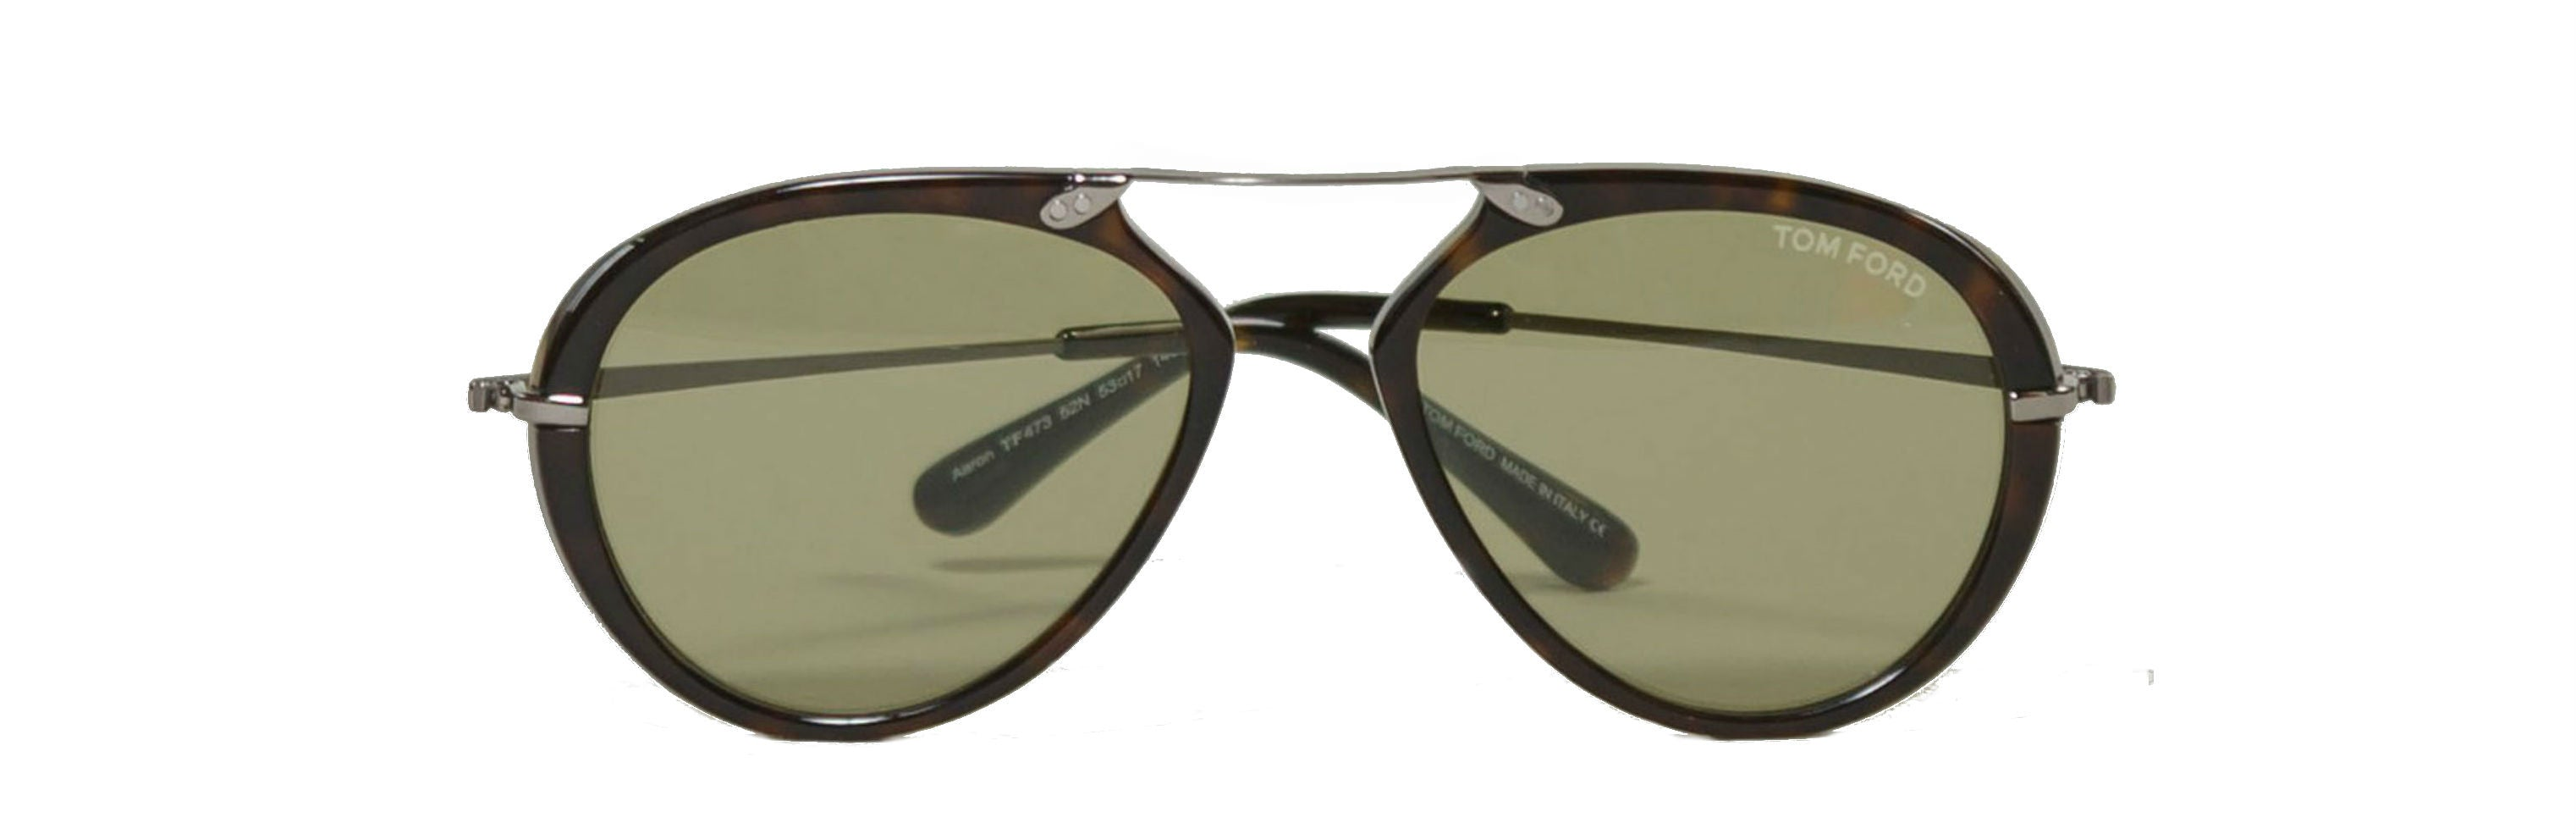 Tom Ford Aaron Frames